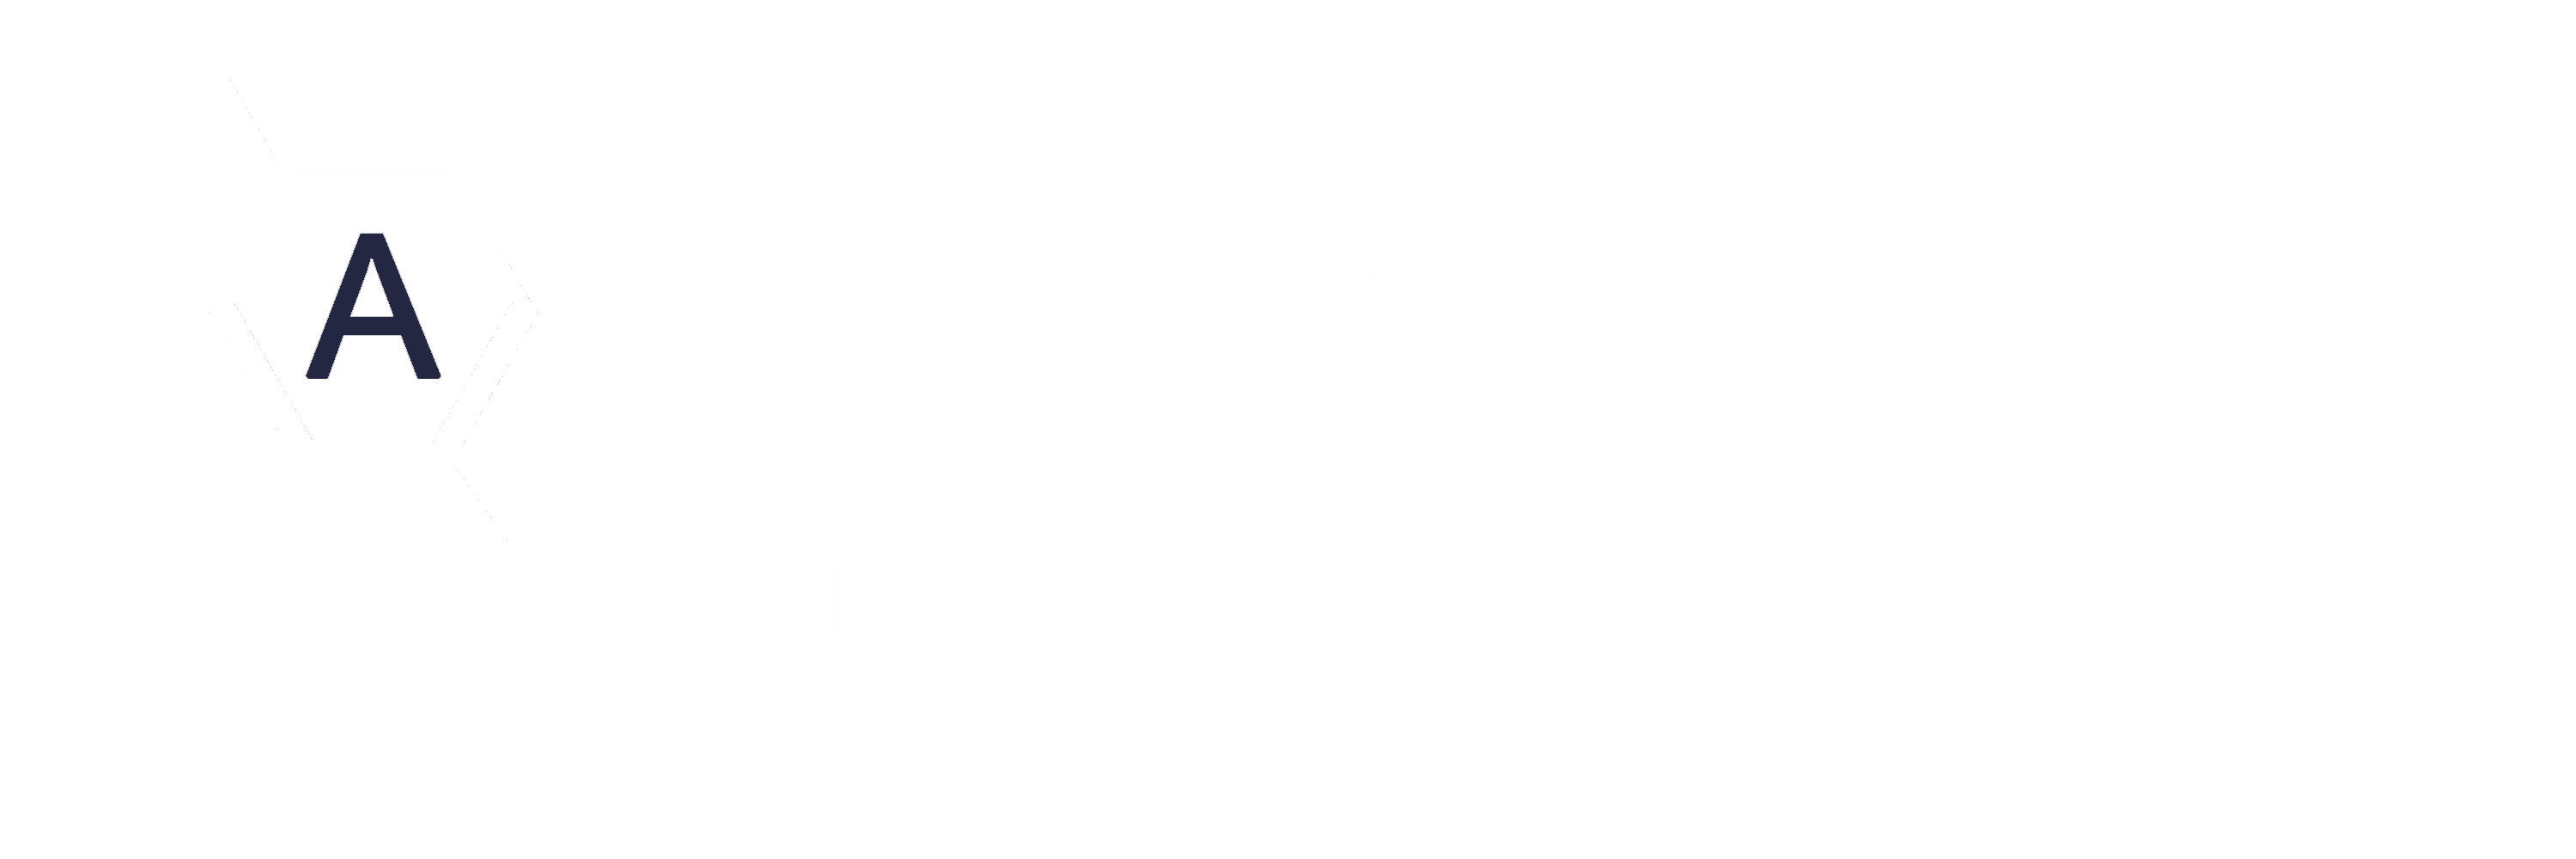 Autolab Car Spa & Detailing